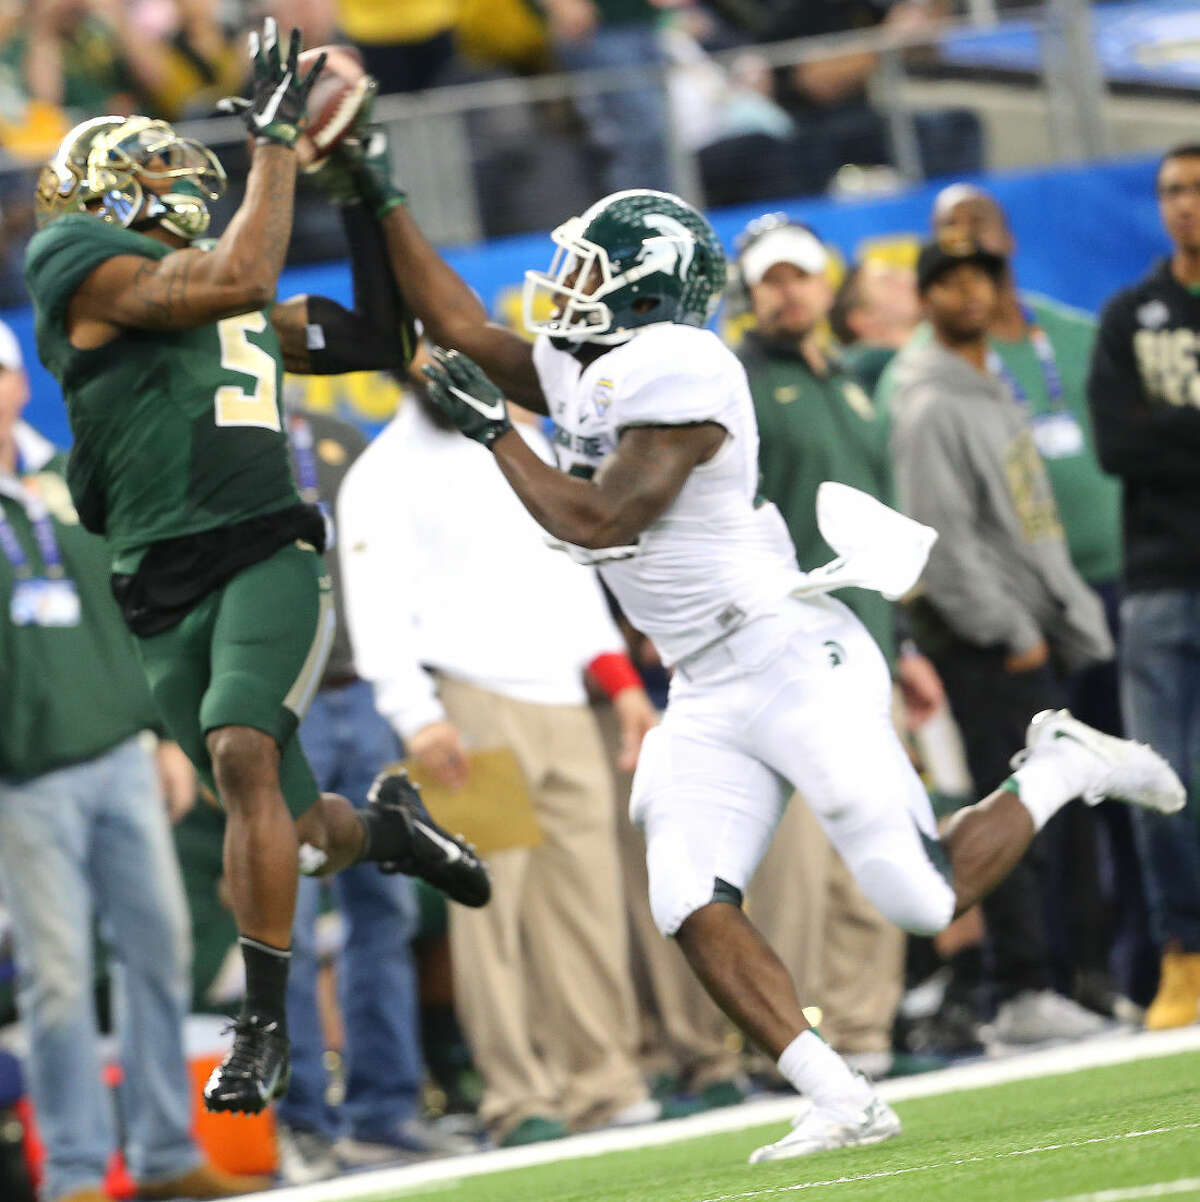 Midland High grad and Baylor wide receiver Antwan Goodley (5) hauls in a pass in the Goodyear Cotton Bowl Classic on Jan. 1 where Goodley's Bears took on the Michigan State Spartans.